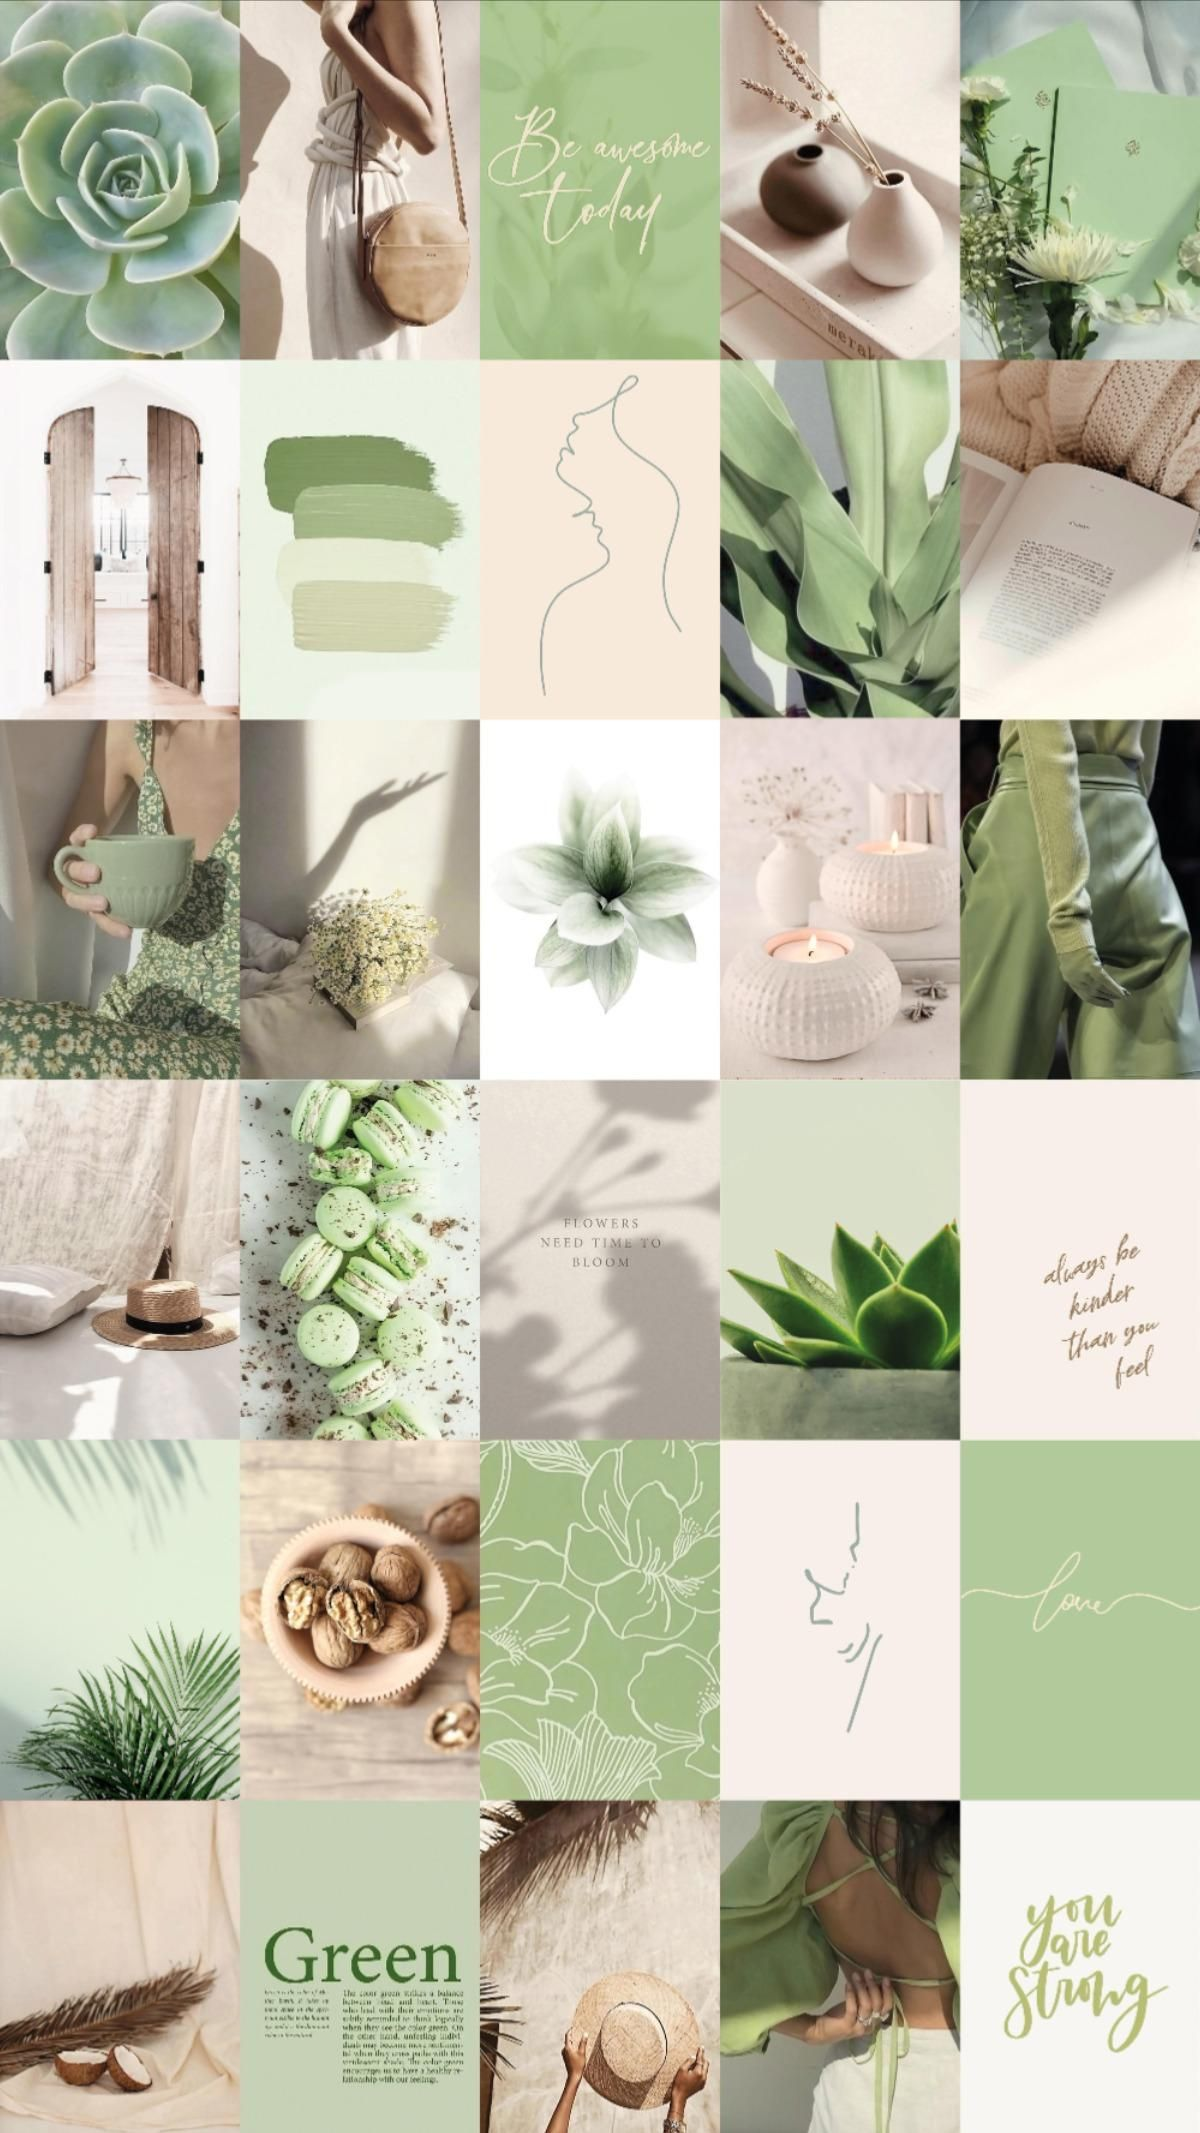 Spice up your room with this sage green aesthetic wall collage!